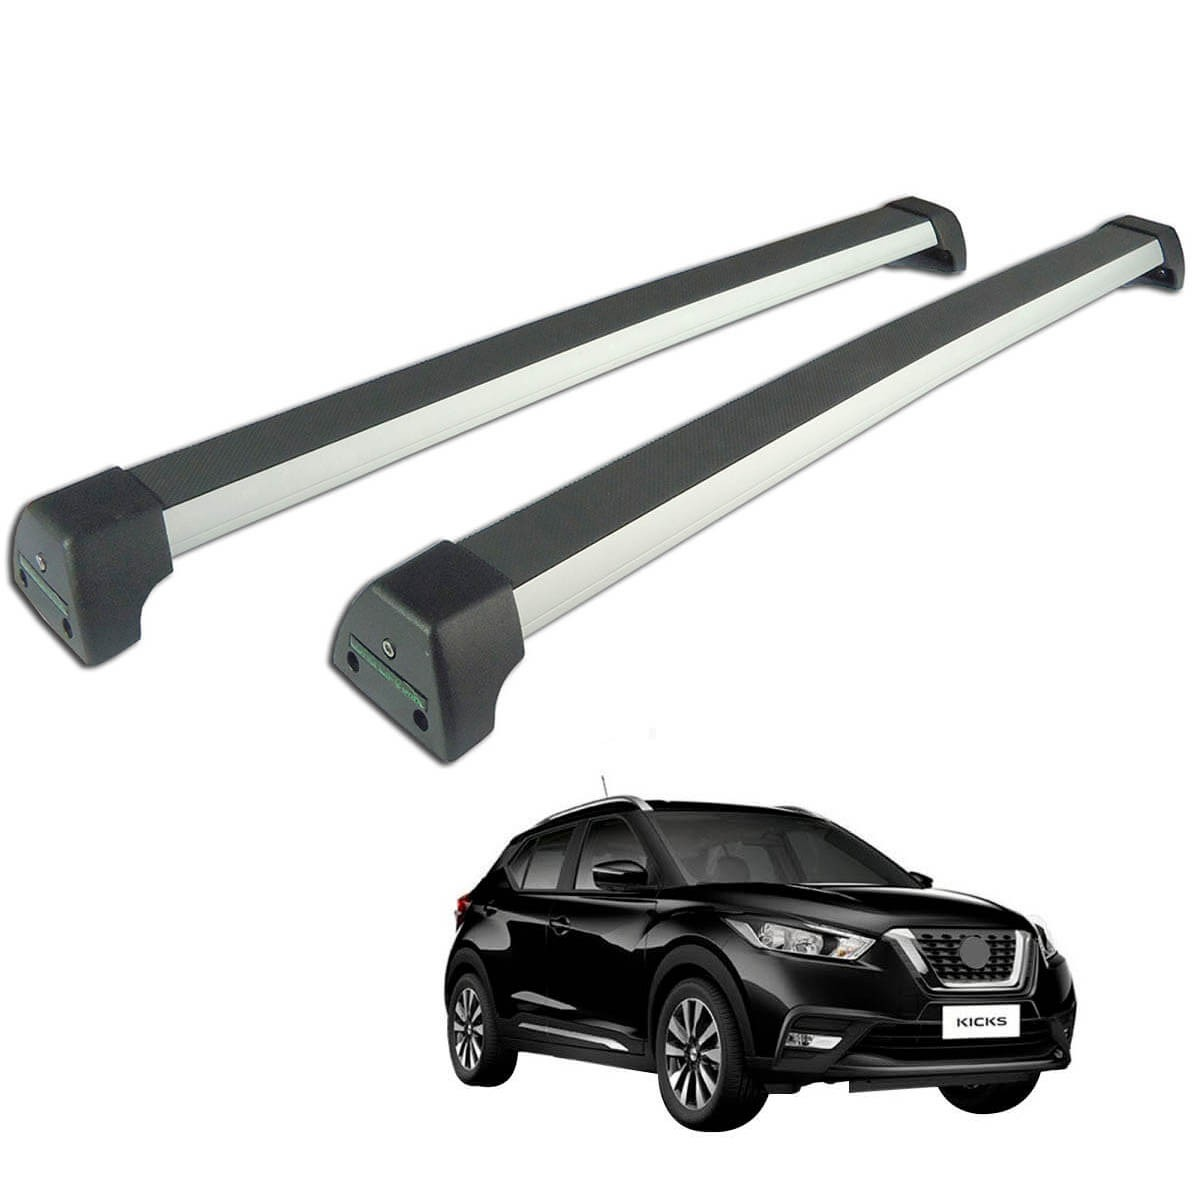 Rack de teto Long Life Sports Nissan Kicks 2017 a 2021